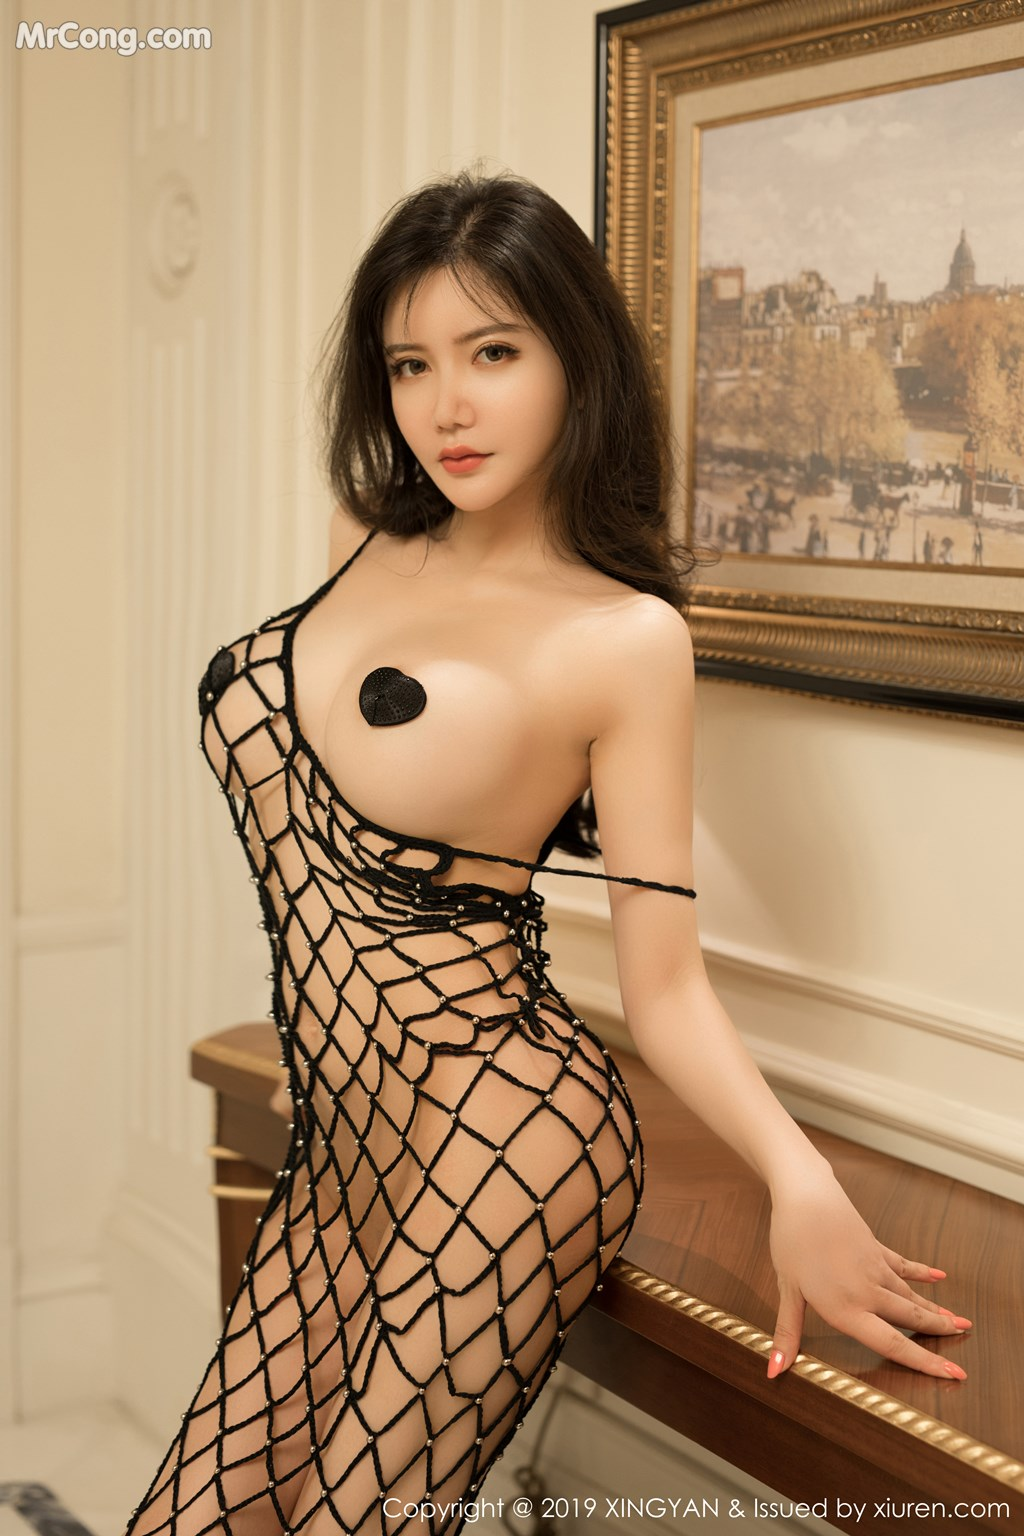 Image XingYan-Vol.126-MrCong.com-025 in post XingYan Vol.126: 心妍小公主 (36 ảnh)